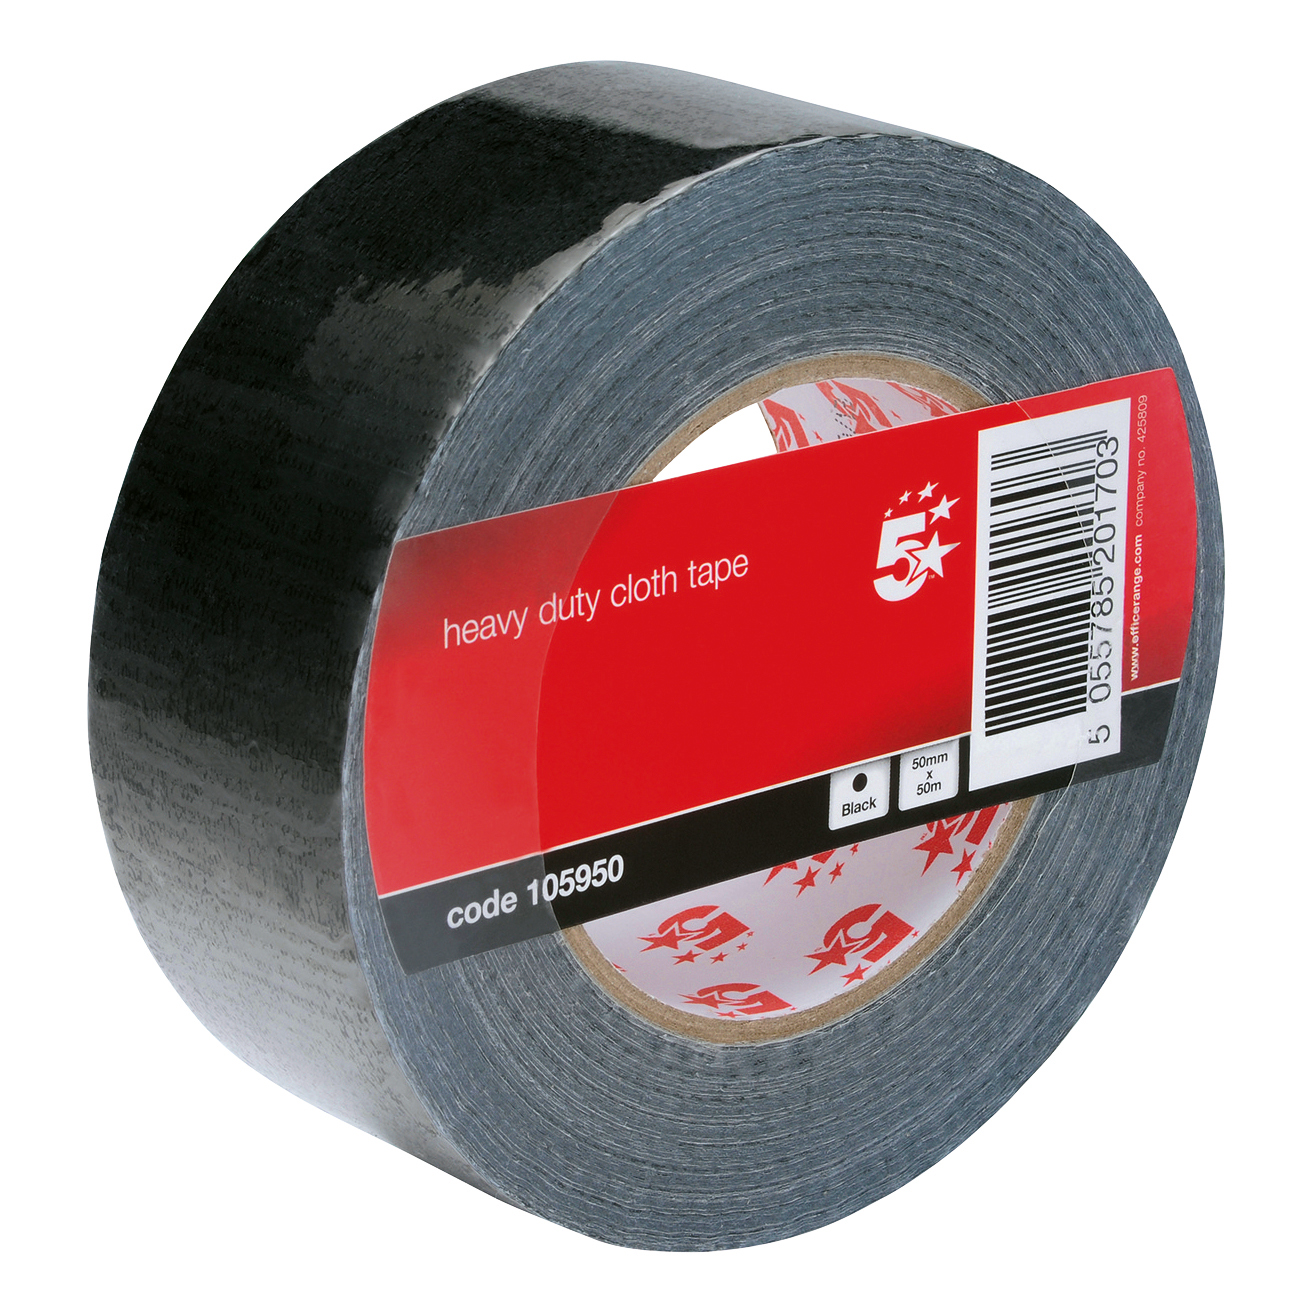 Packing Tape 5 Star Office Cloth Tape Heavy-duty Waterproof Tearable Multisurface Roll 50mm x 50m Black